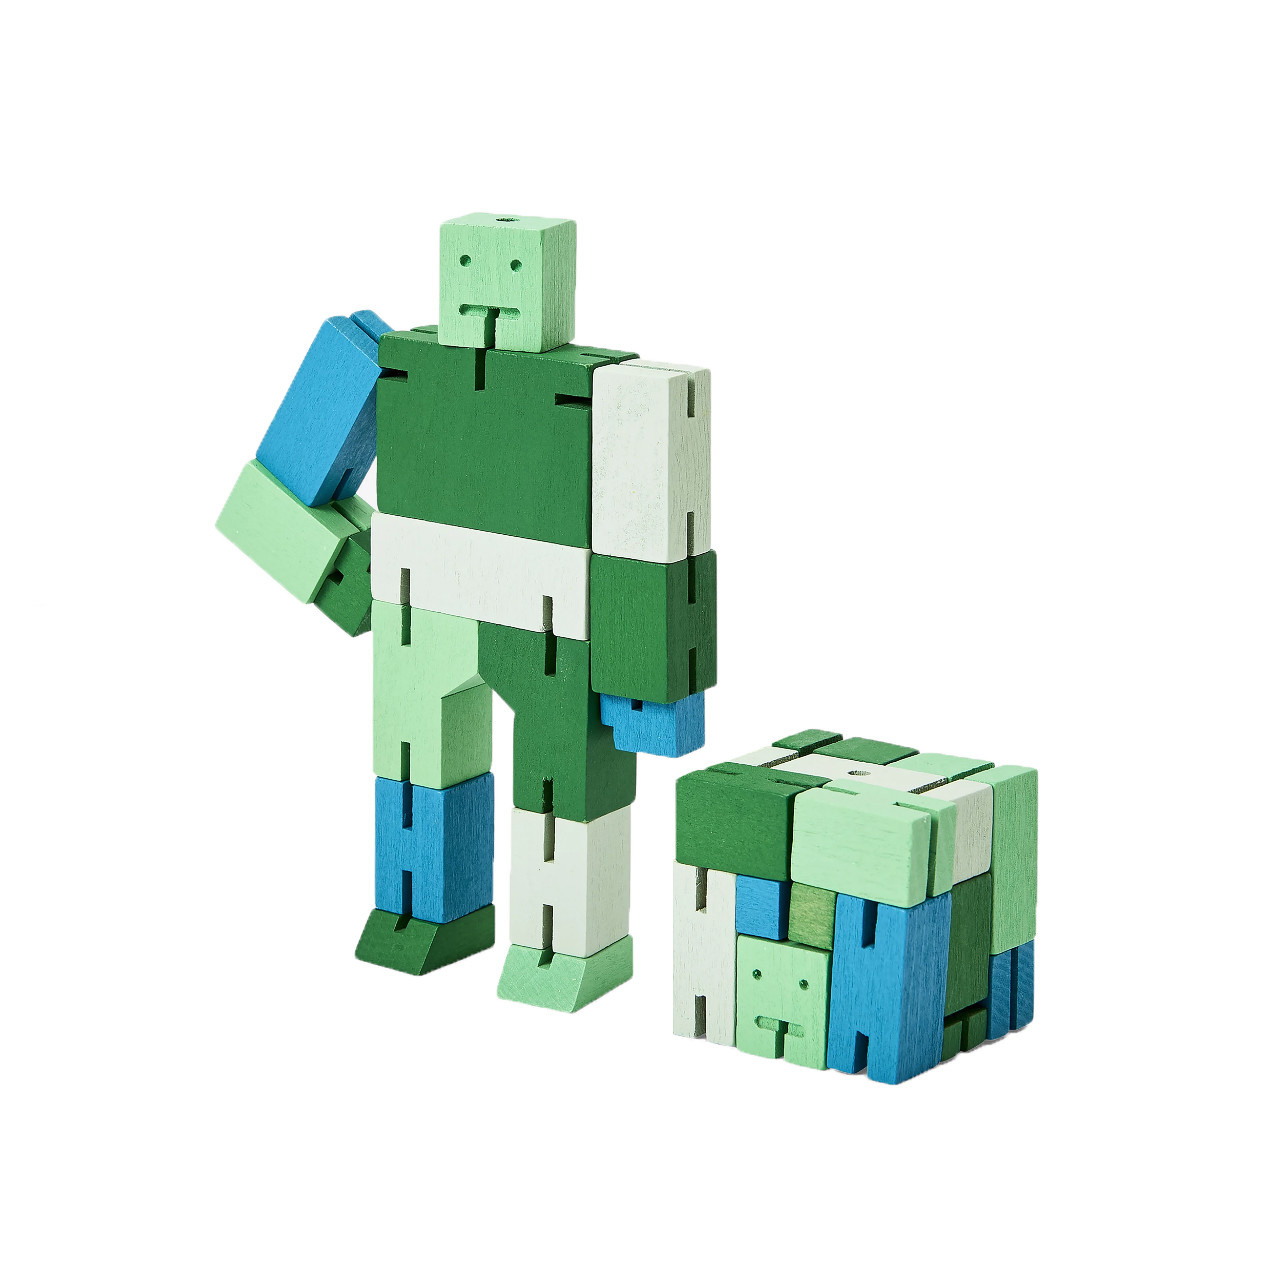 Cubebot Capsule Small - Green Multi